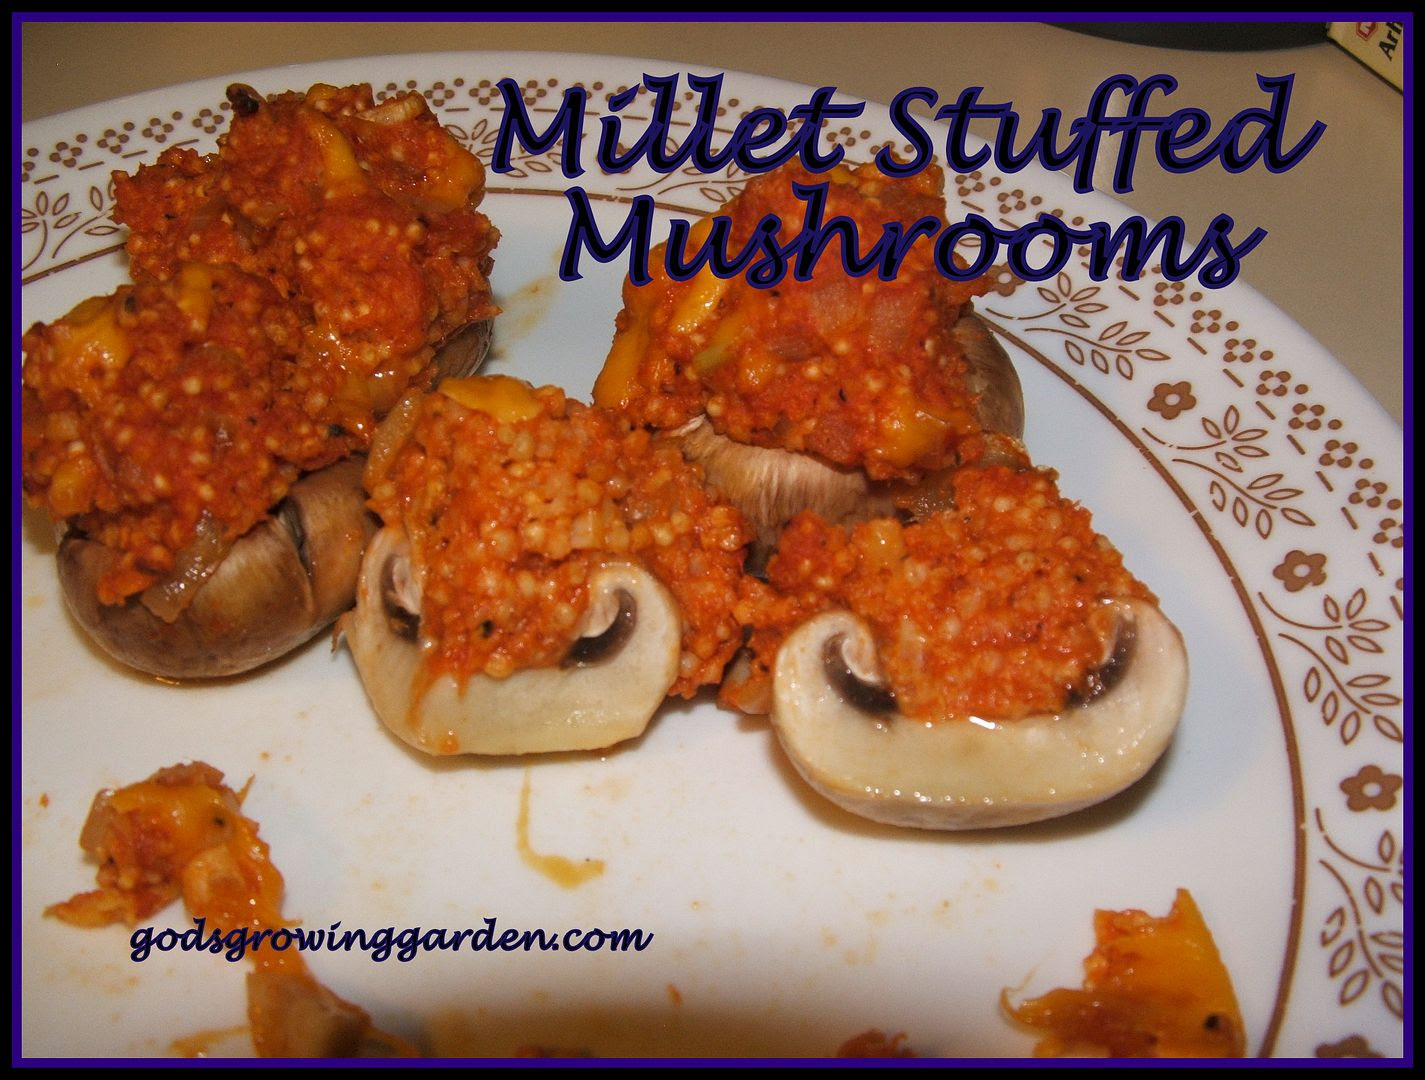 Millet Stuffed Mushrooms, by Angie Ouellette-Tower for godsgrowinggarden.com